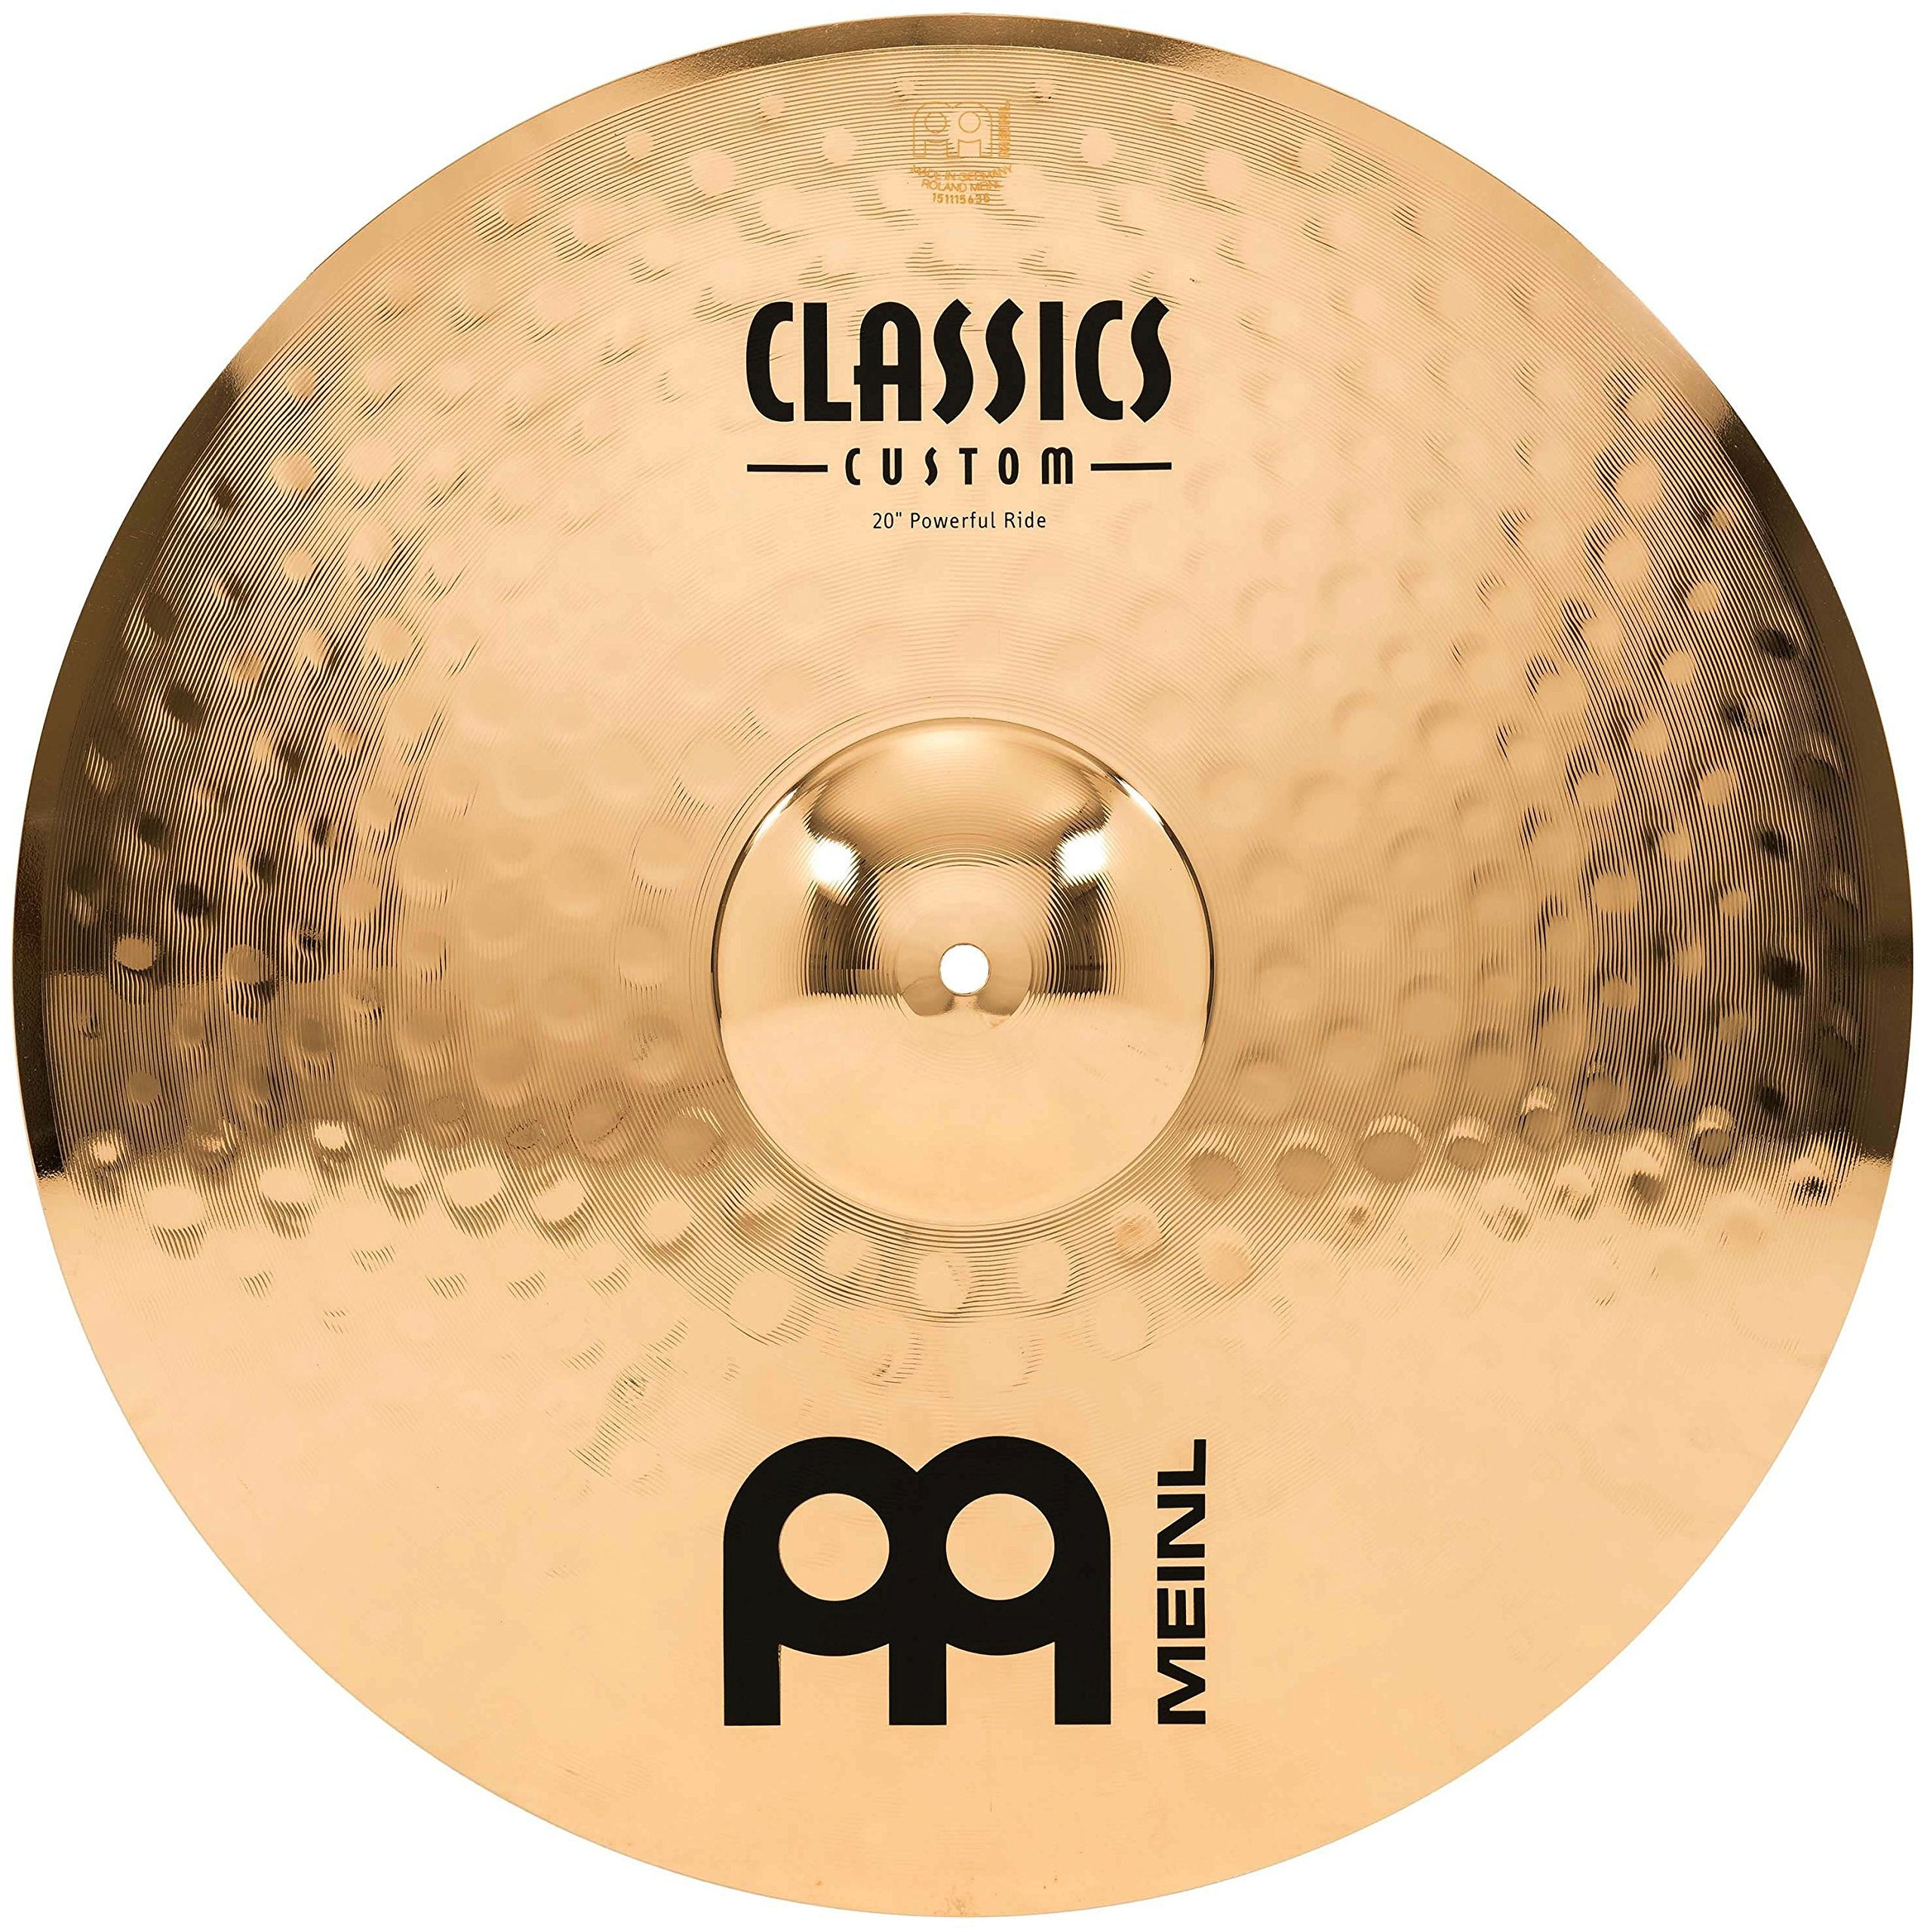 Meinl 20'' Powerful Ride Cymbal - Classics Custom Brilliant - Made in Germany, 2-YEAR WARRANTY (CC20PR-B) by Meinl Cymbals